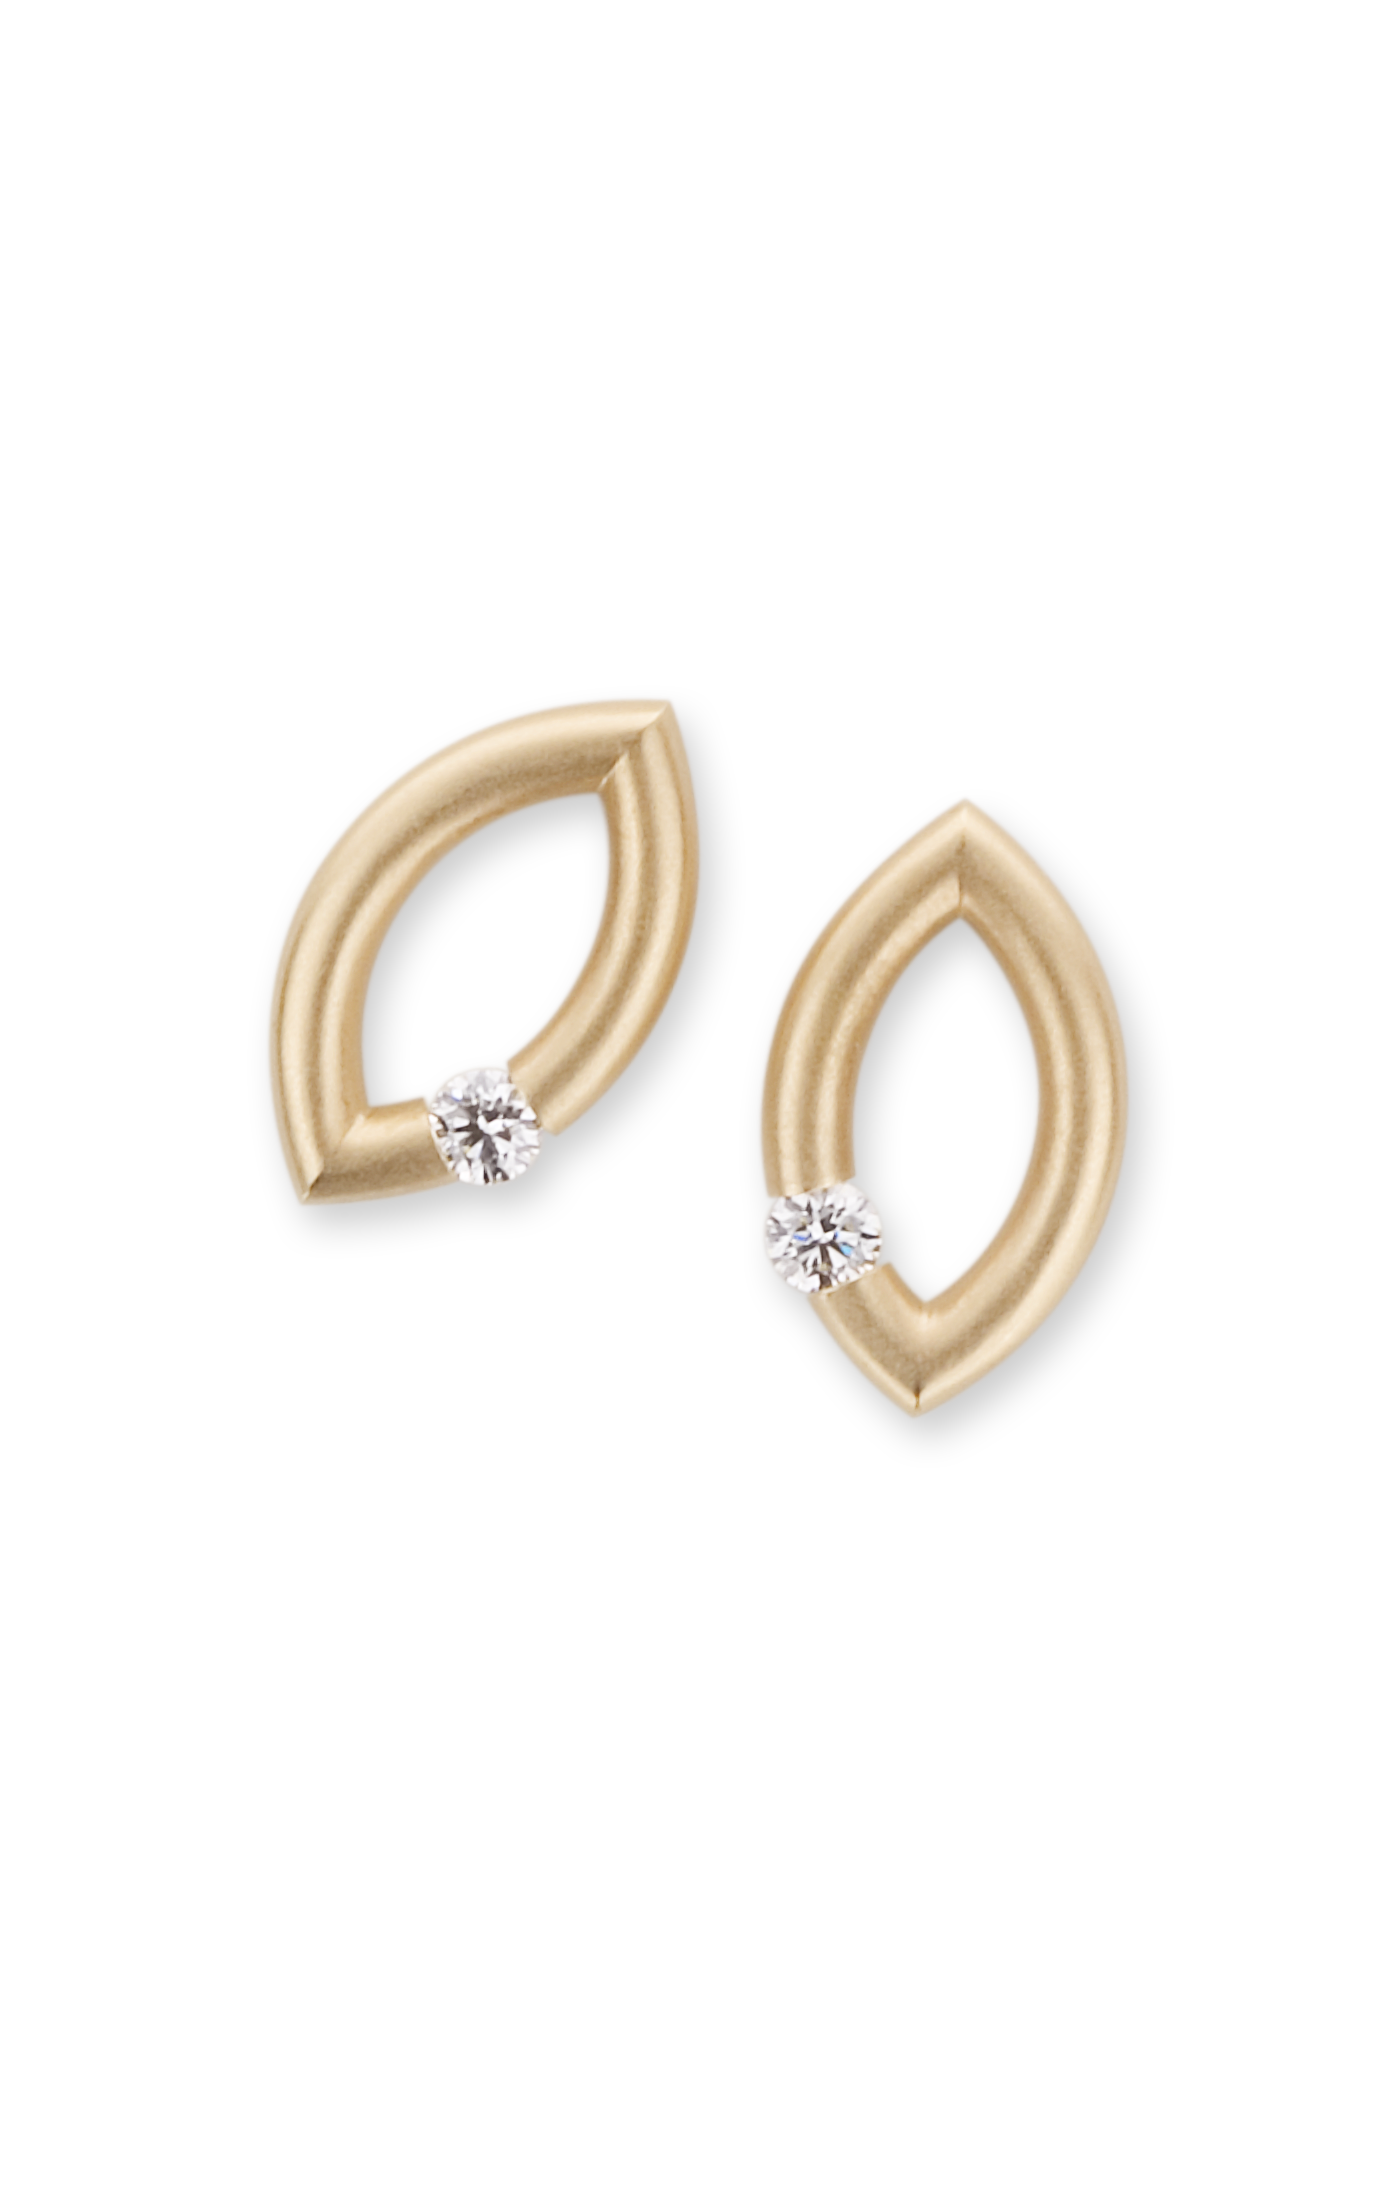 Browse Steven Kretchmer Micro Mango Earrings